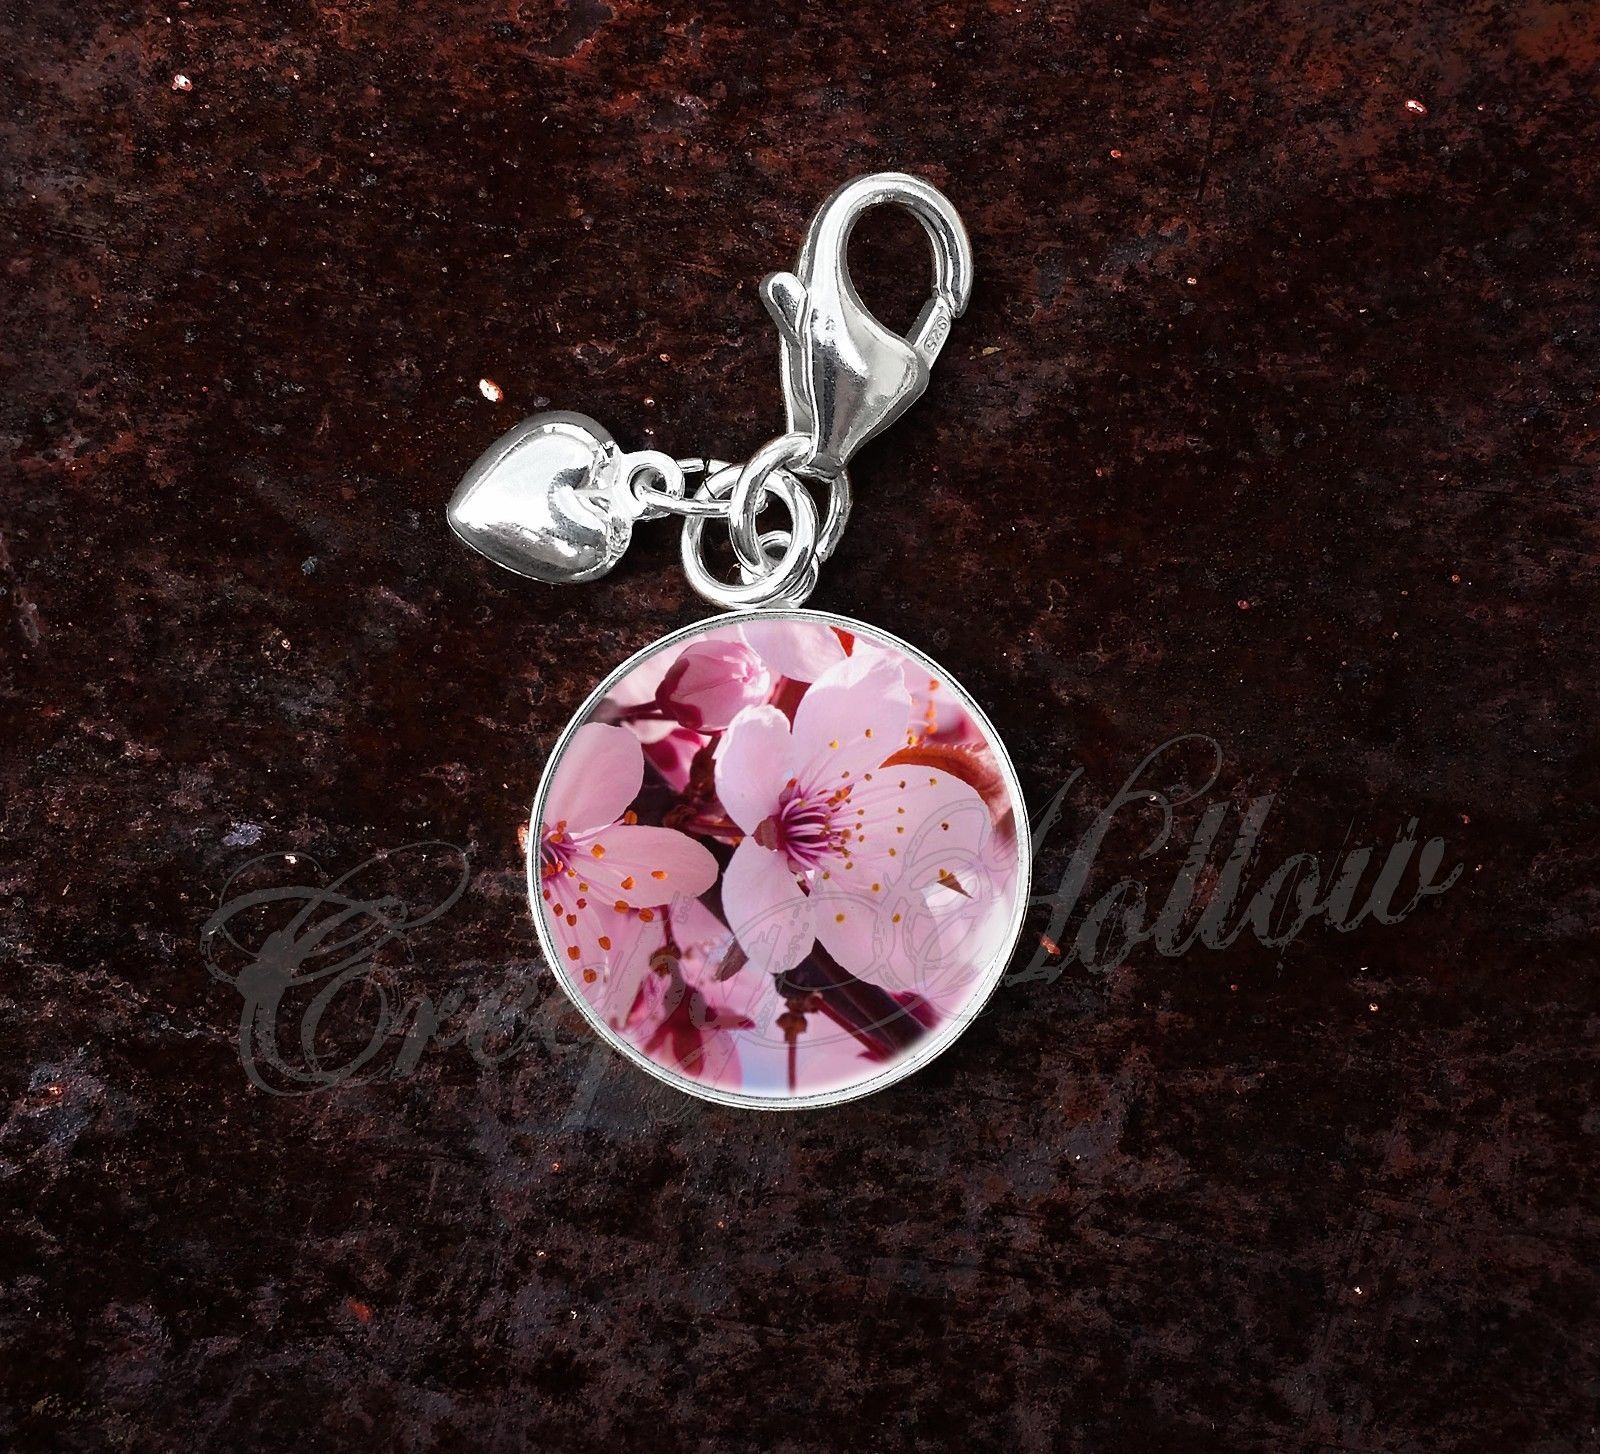 Primary image for 925 Sterling Silver Charm Cherry Blossom Flowers